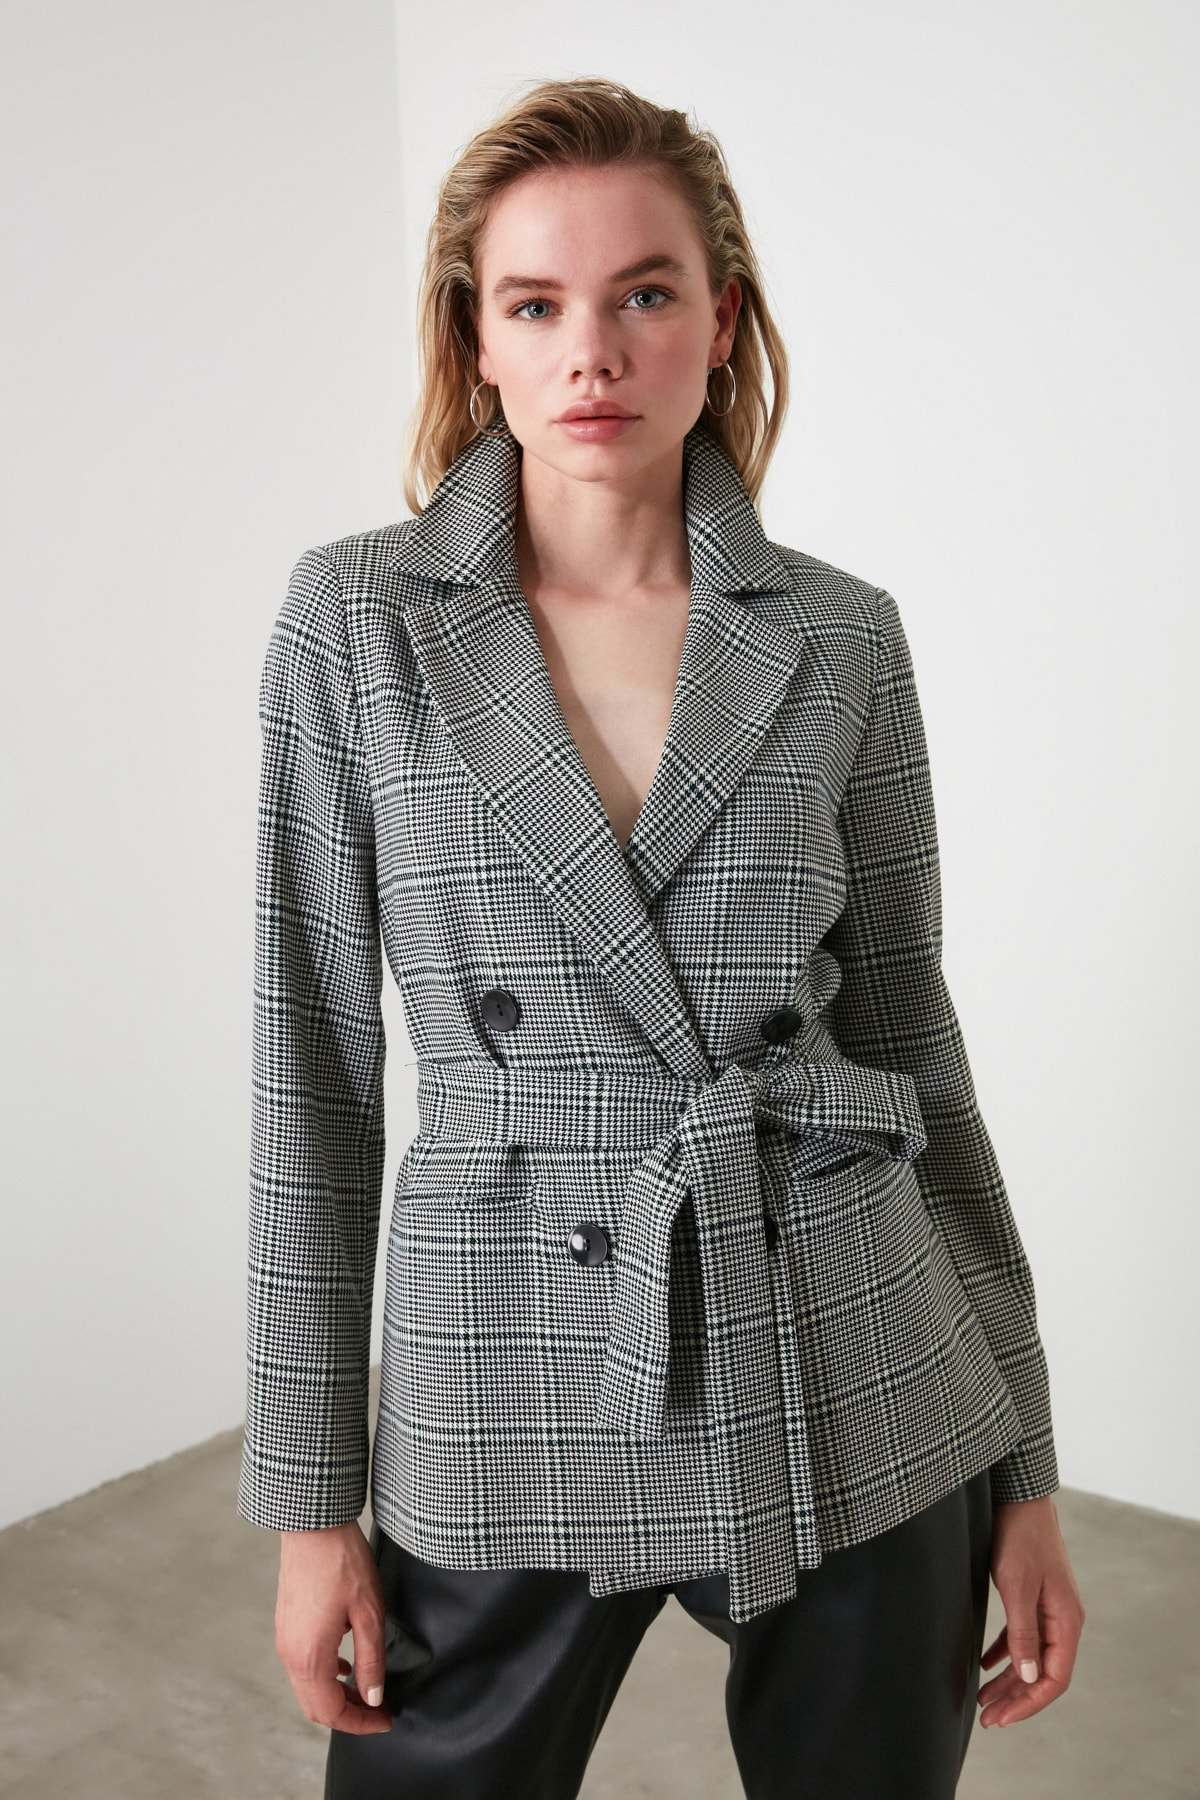 Office Ladies Notched Collar Plaid Women Blazer Double Breasted Autumn Coat 2020 Casual Pockets Female Suit Jacket office ladies notched collar plaid women blazer double breasted autumn jacket 2021 casual pockets female suits coat